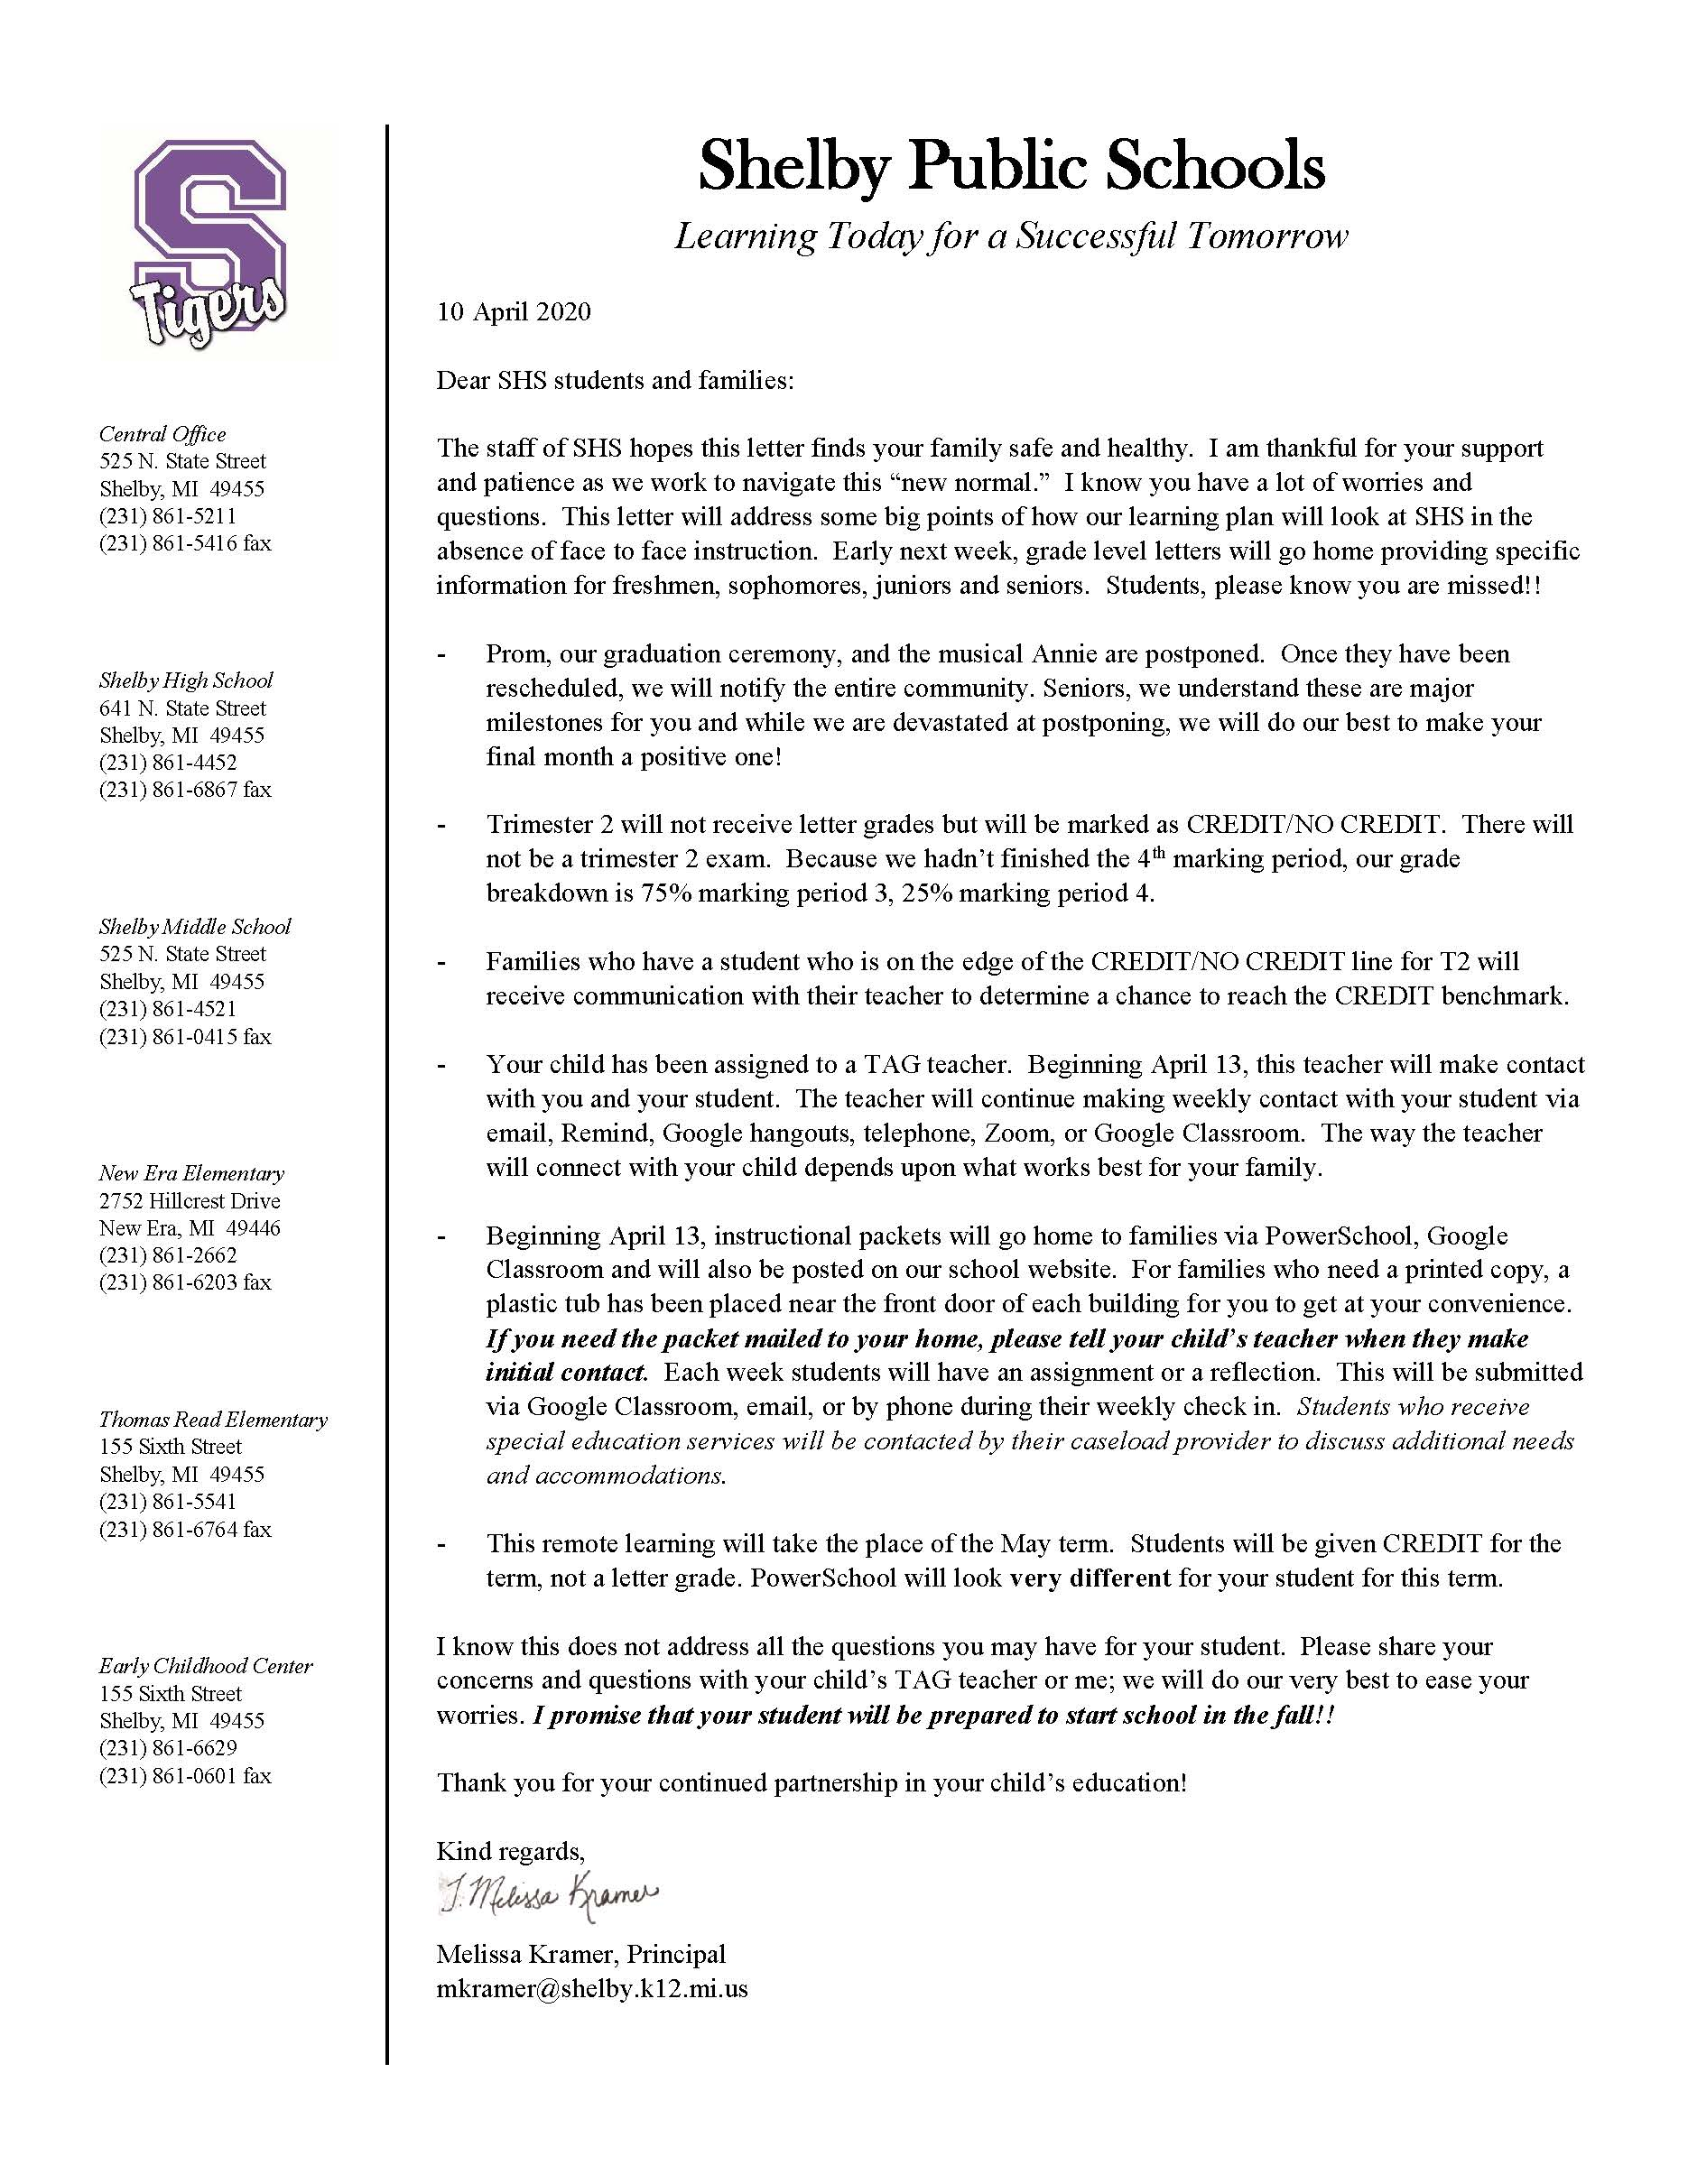 Picture of the letter to high school parents from April 10, 2020